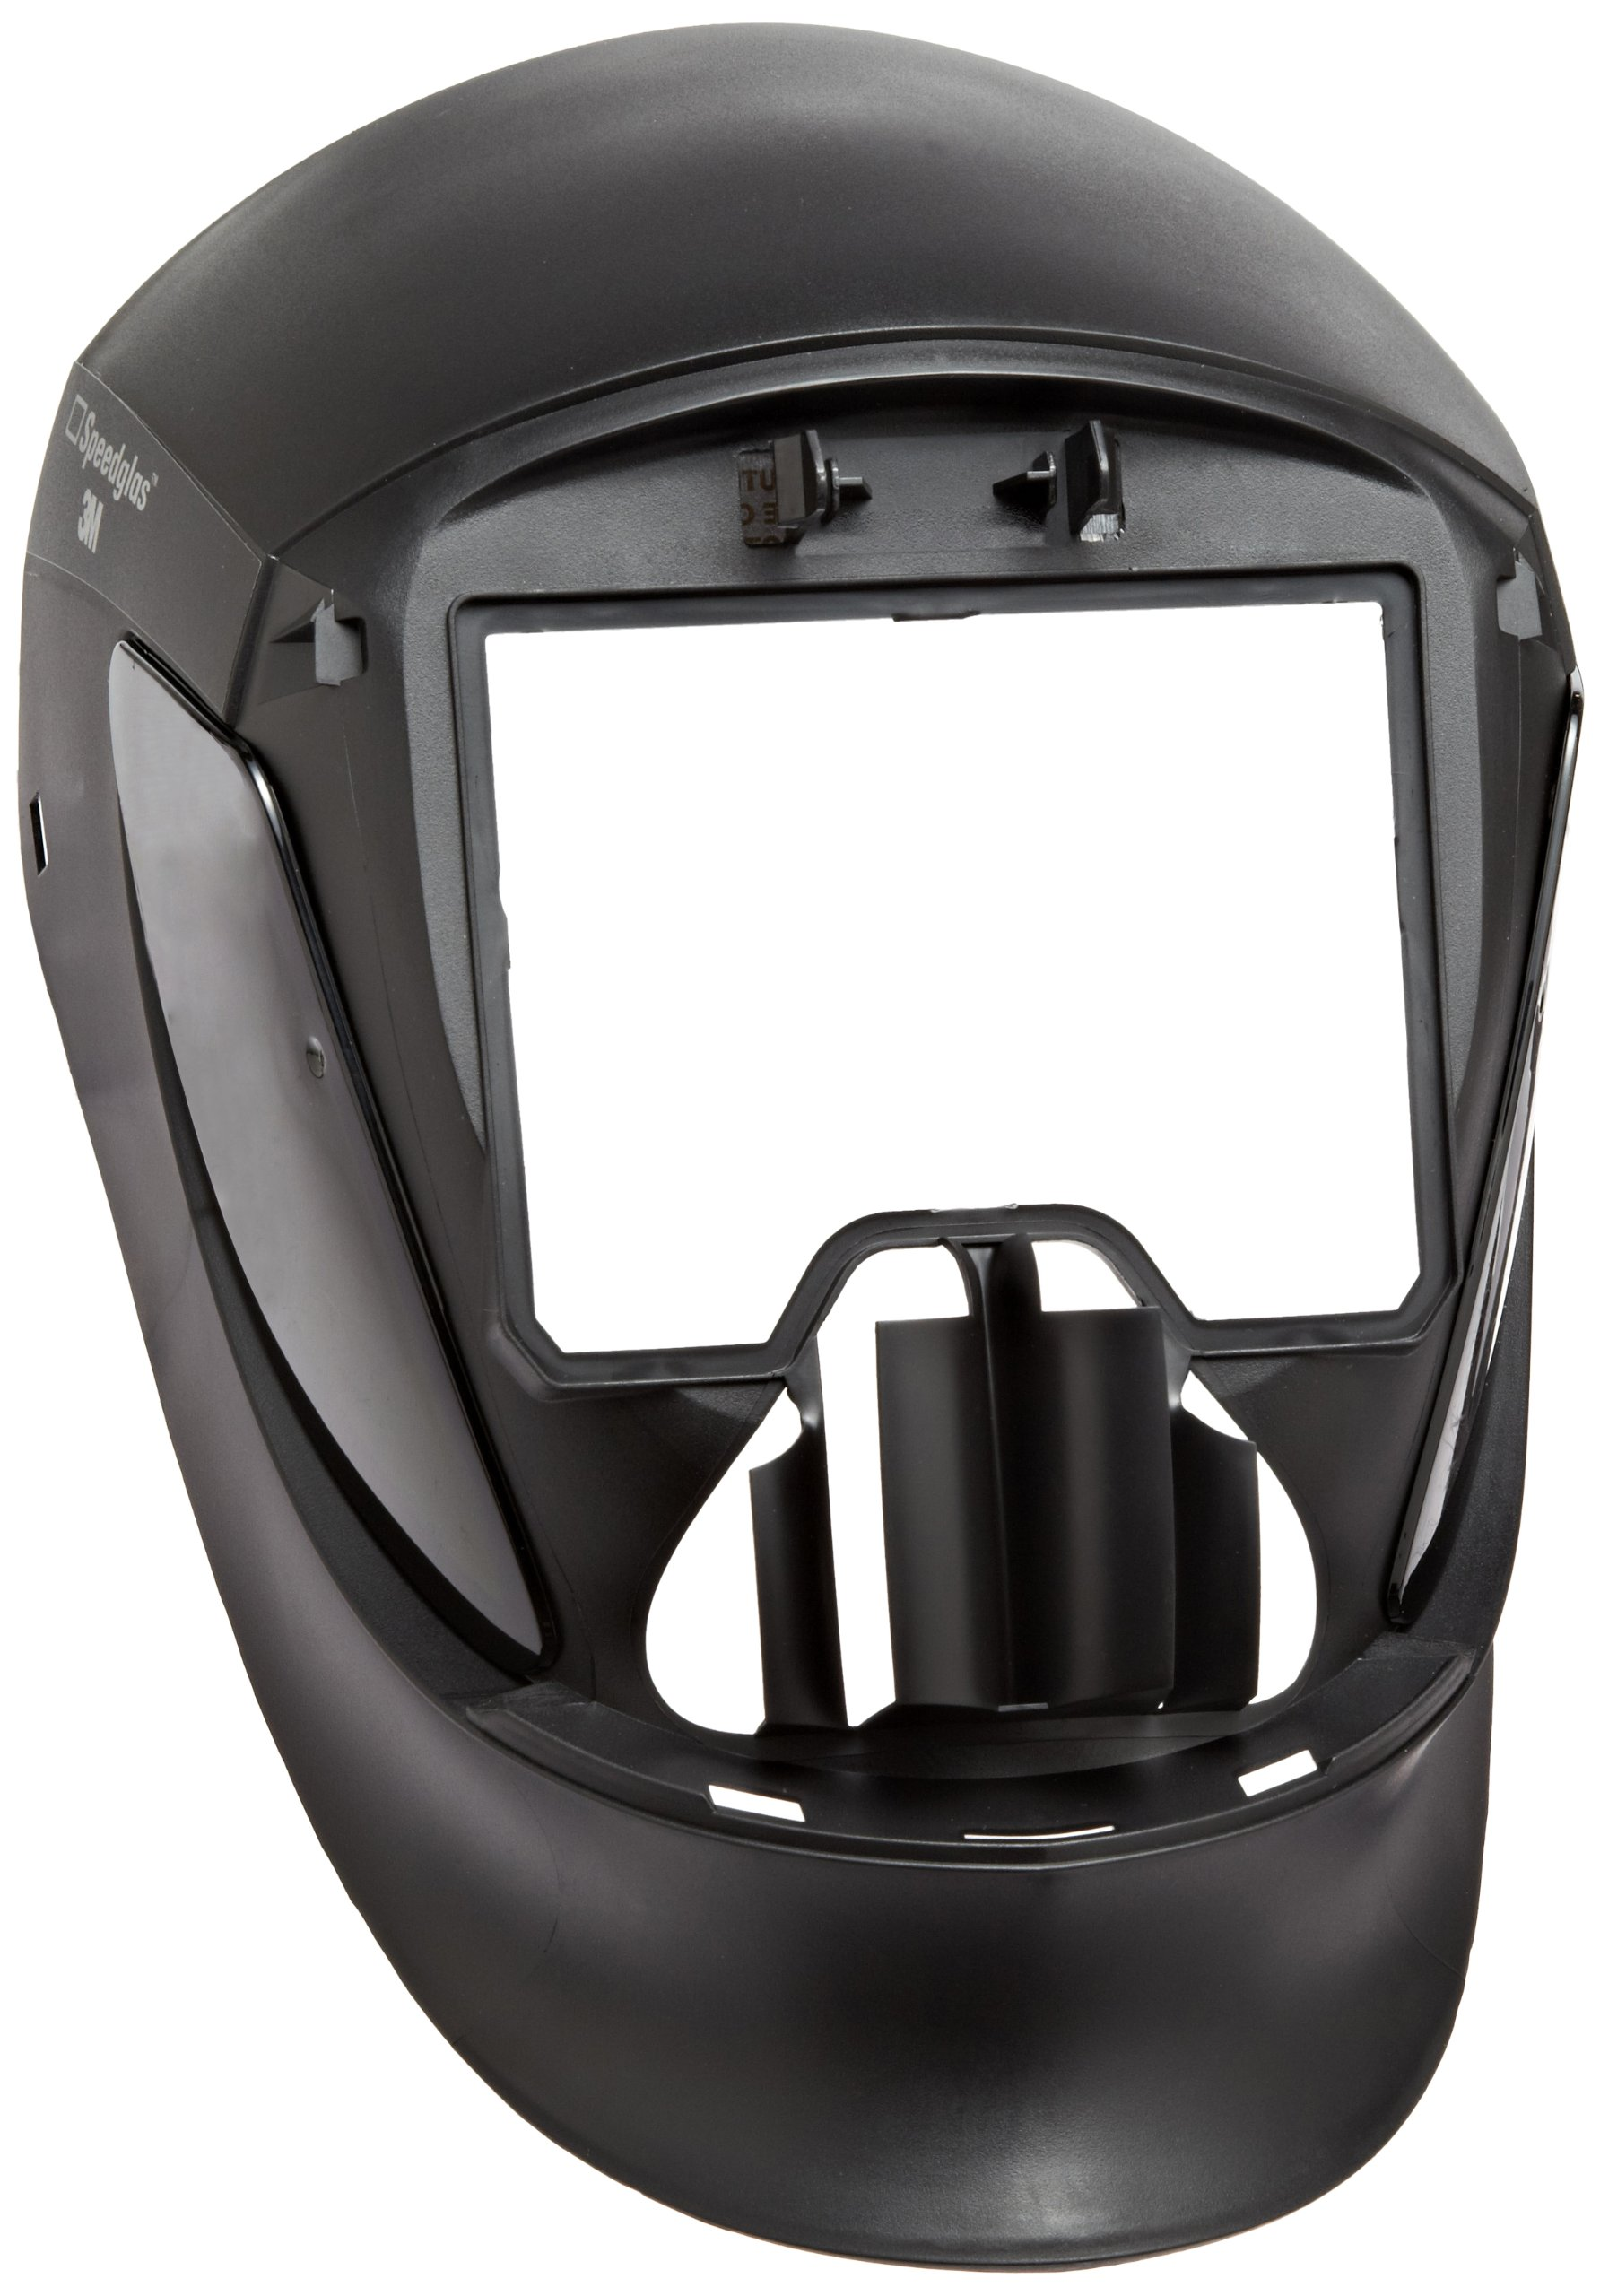 3M Speedglas Welding Helmet Inner Shell 9000, Welding Safety 04-0112-00SW, with SideWindows